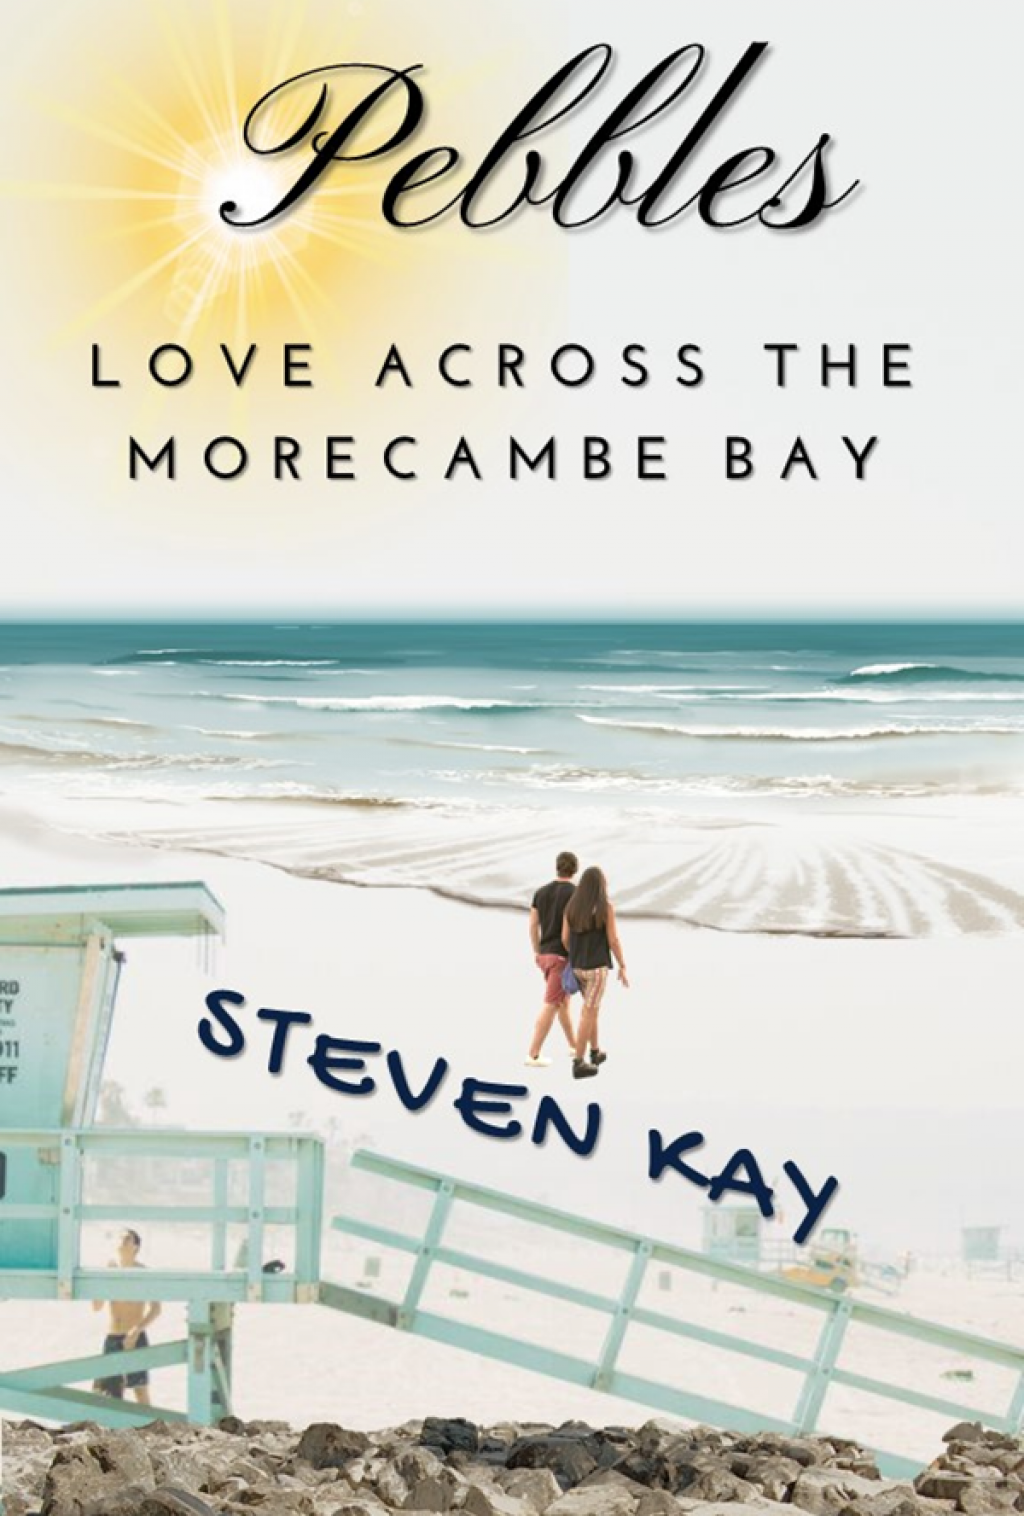 Pebbles Love Across the Morecambe Bay by Steven Kay